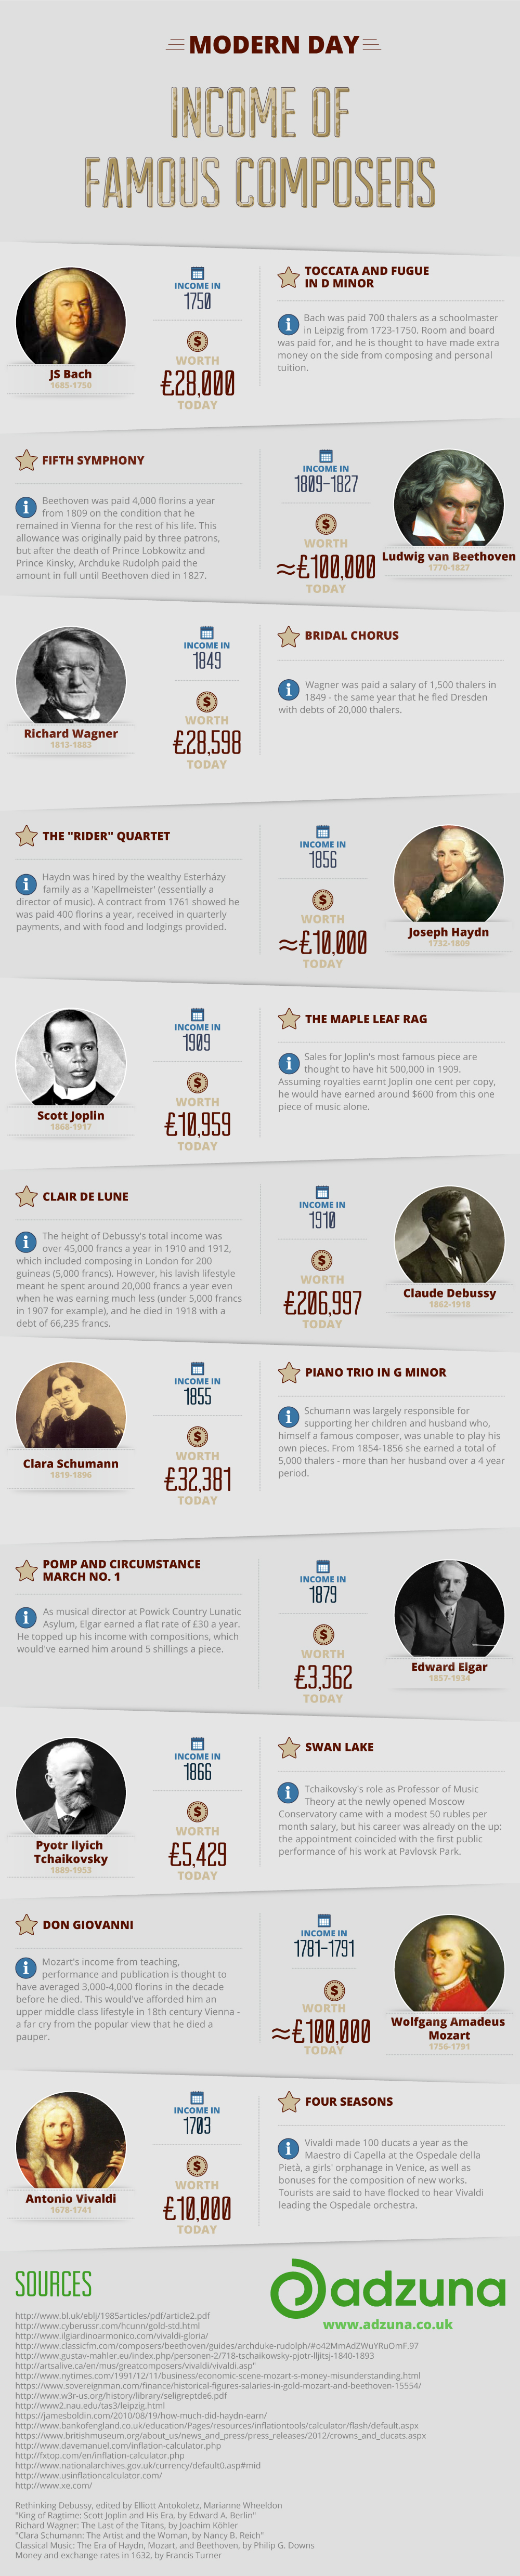 incomes-of-the-great-composers-1464967783